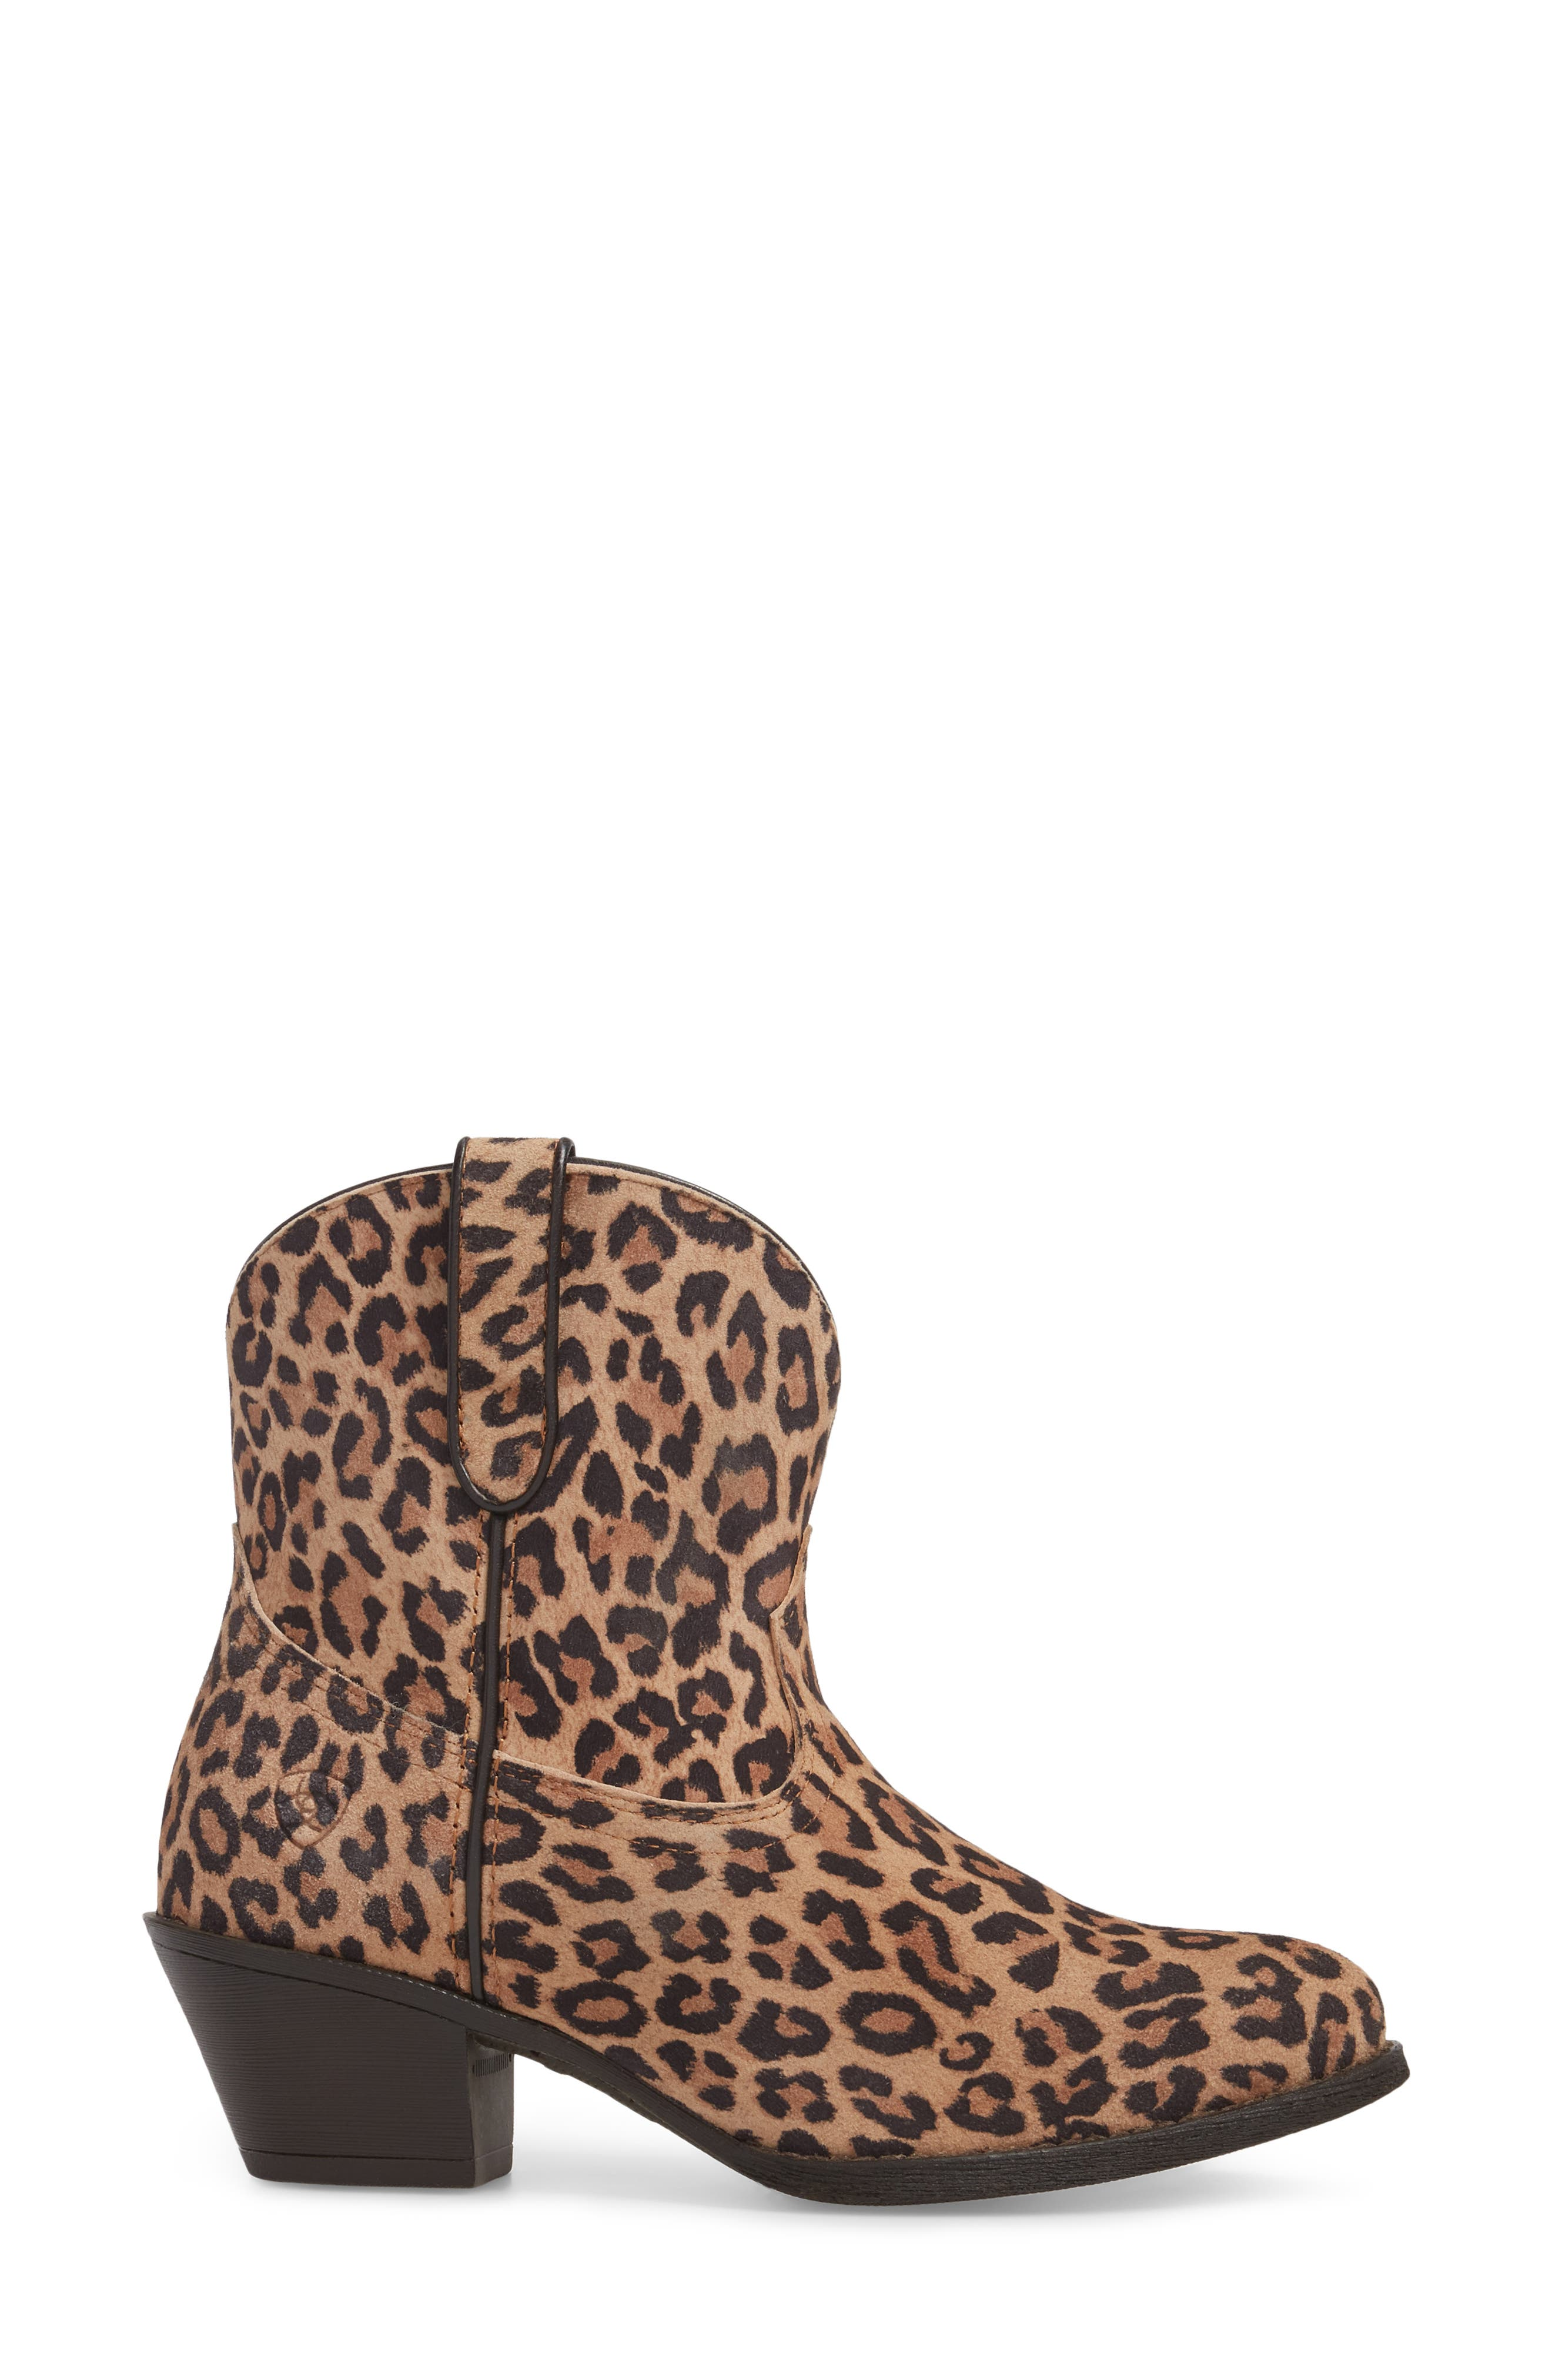 Darlin Short Western Boot,                             Alternate thumbnail 3, color,                             LEOPARD PRINT LEATHER